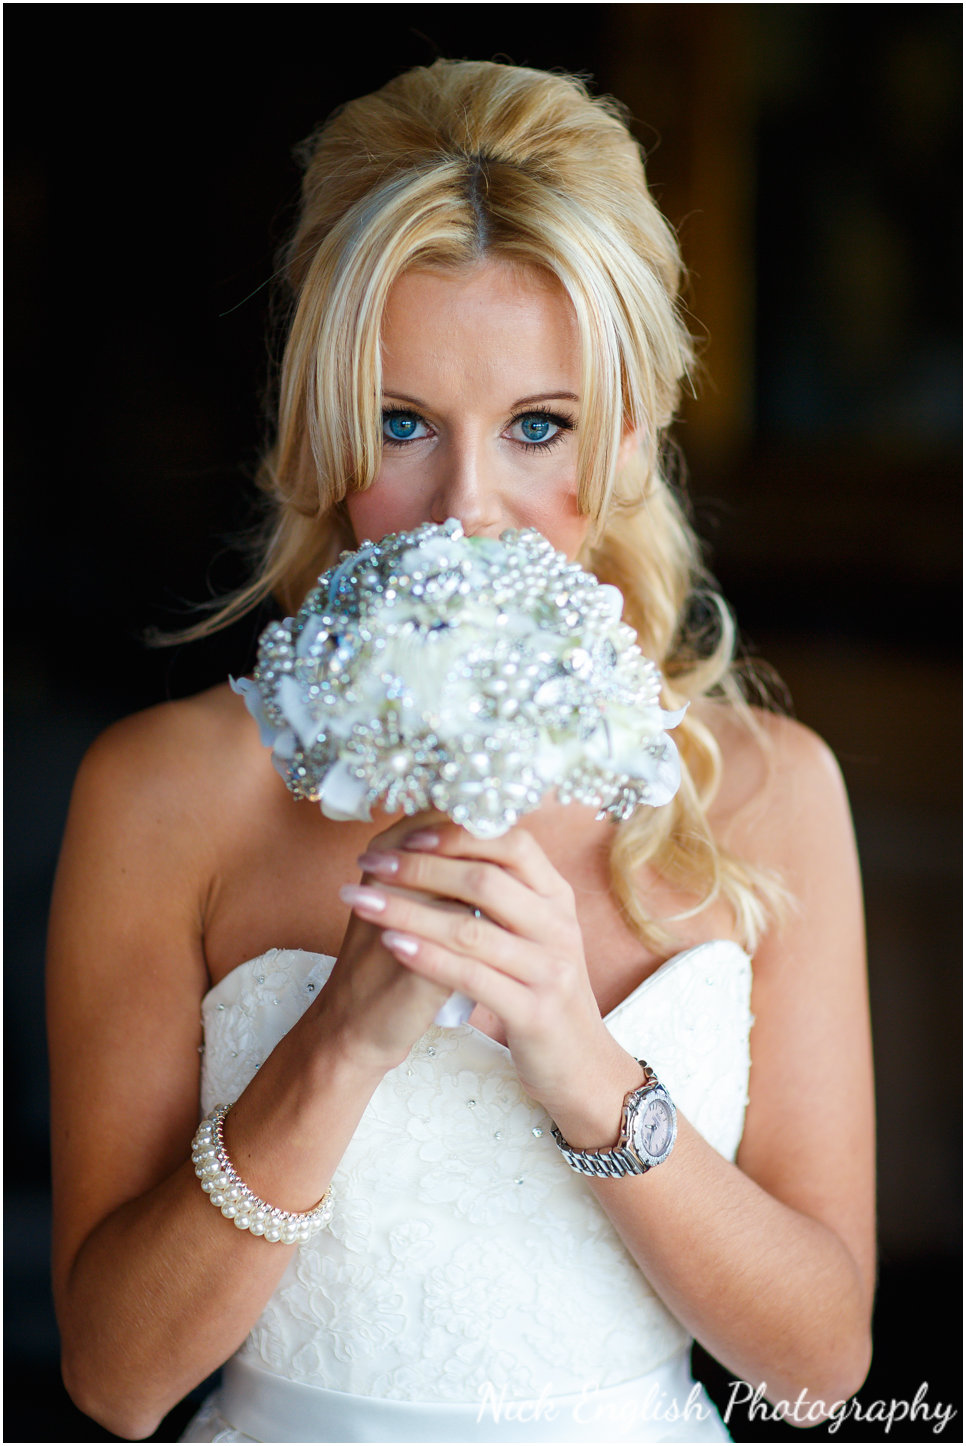 Mitton Hall Beautiful Bride before wedding ceremony photograph with flower bouquet